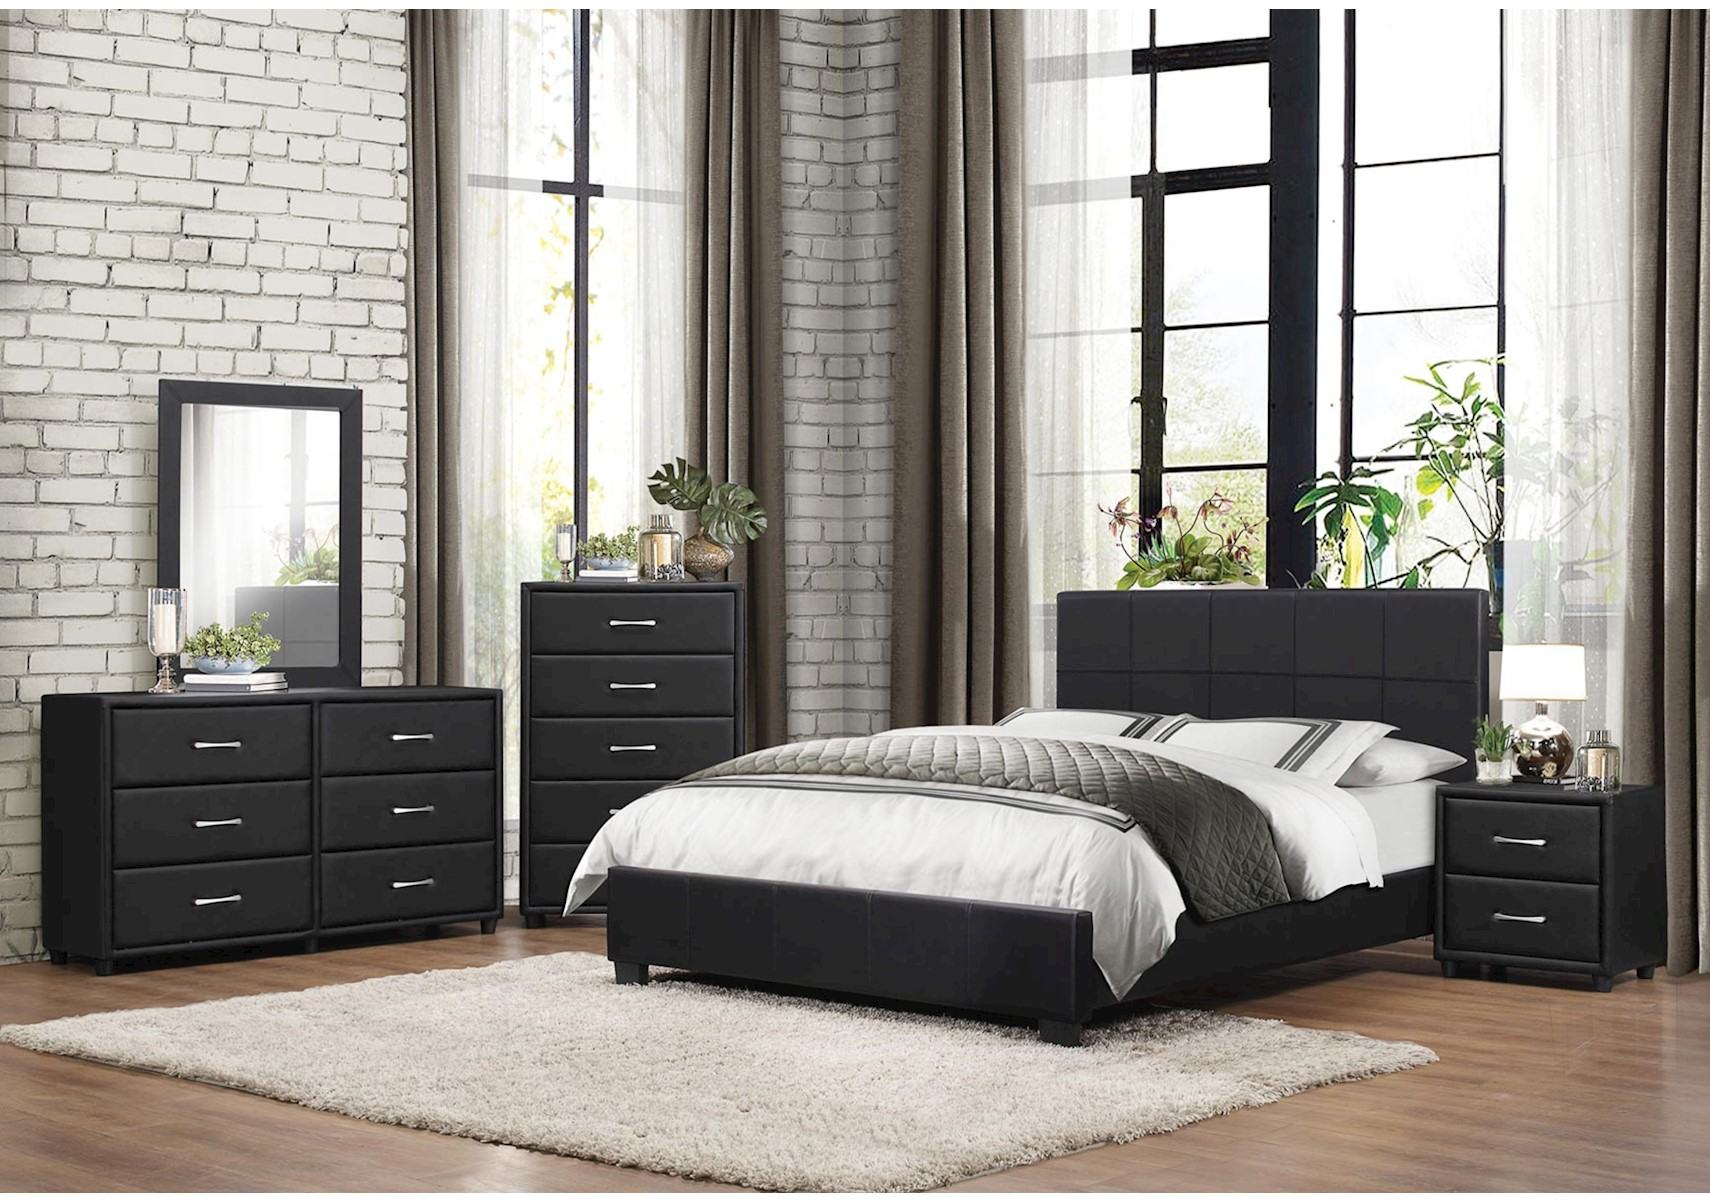 Onyx 4 Pc Queen Bedroom Set